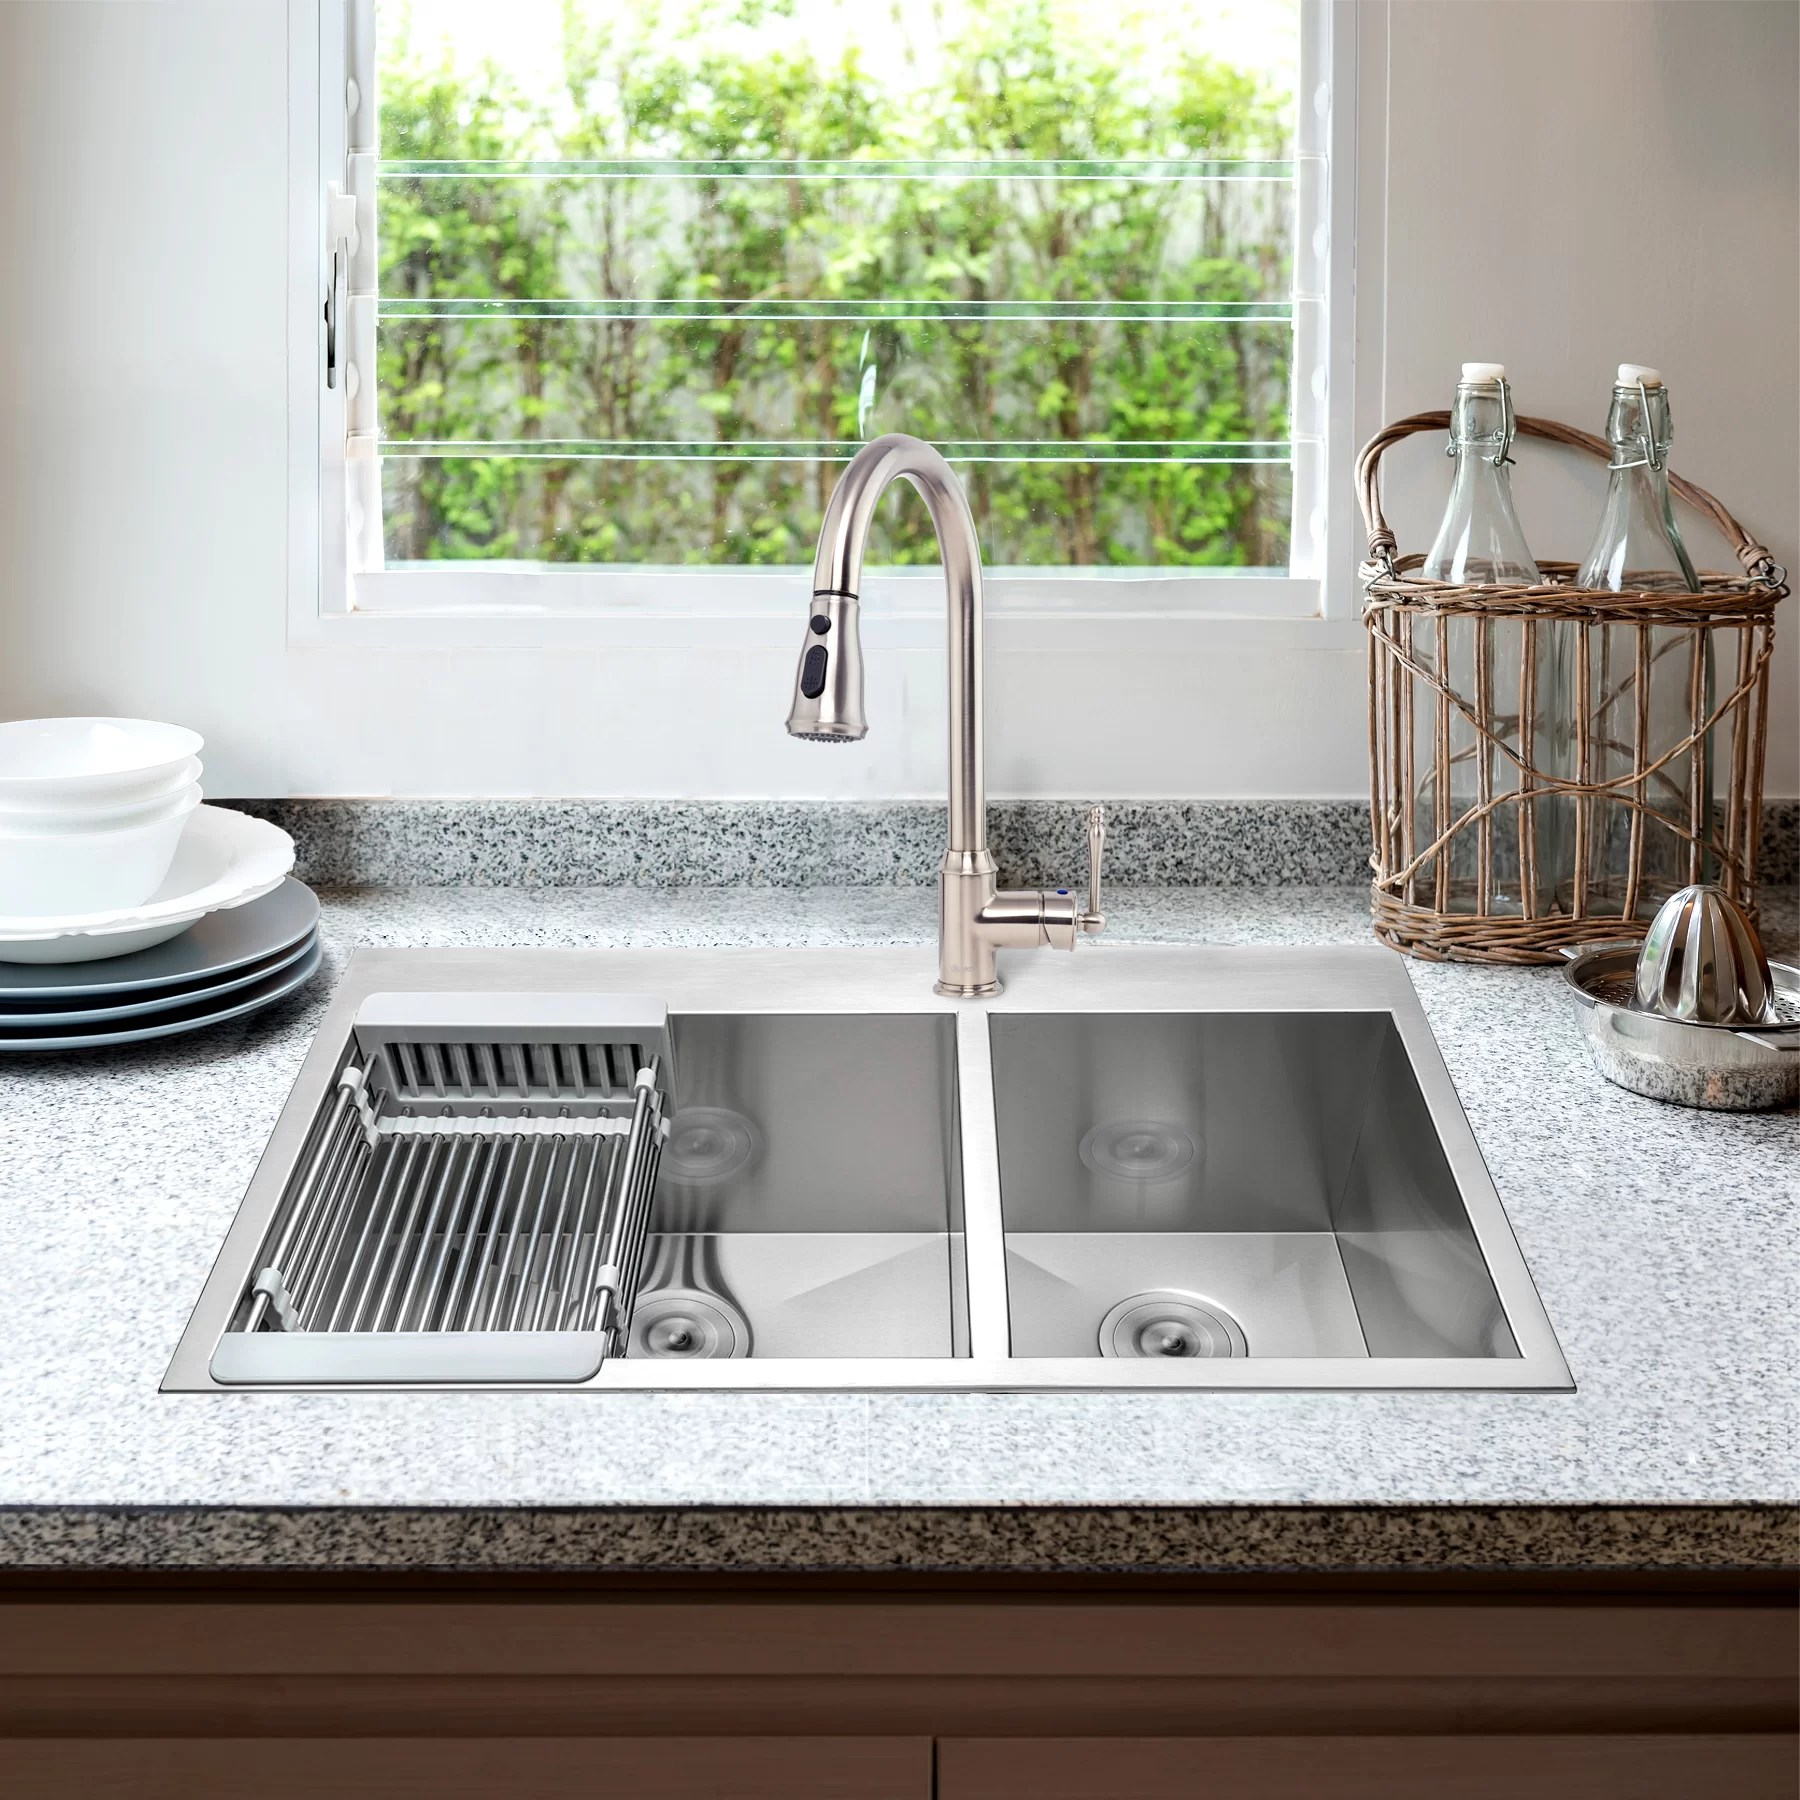 33 l x 22 w dual basin drop in kitchen sink with faucet